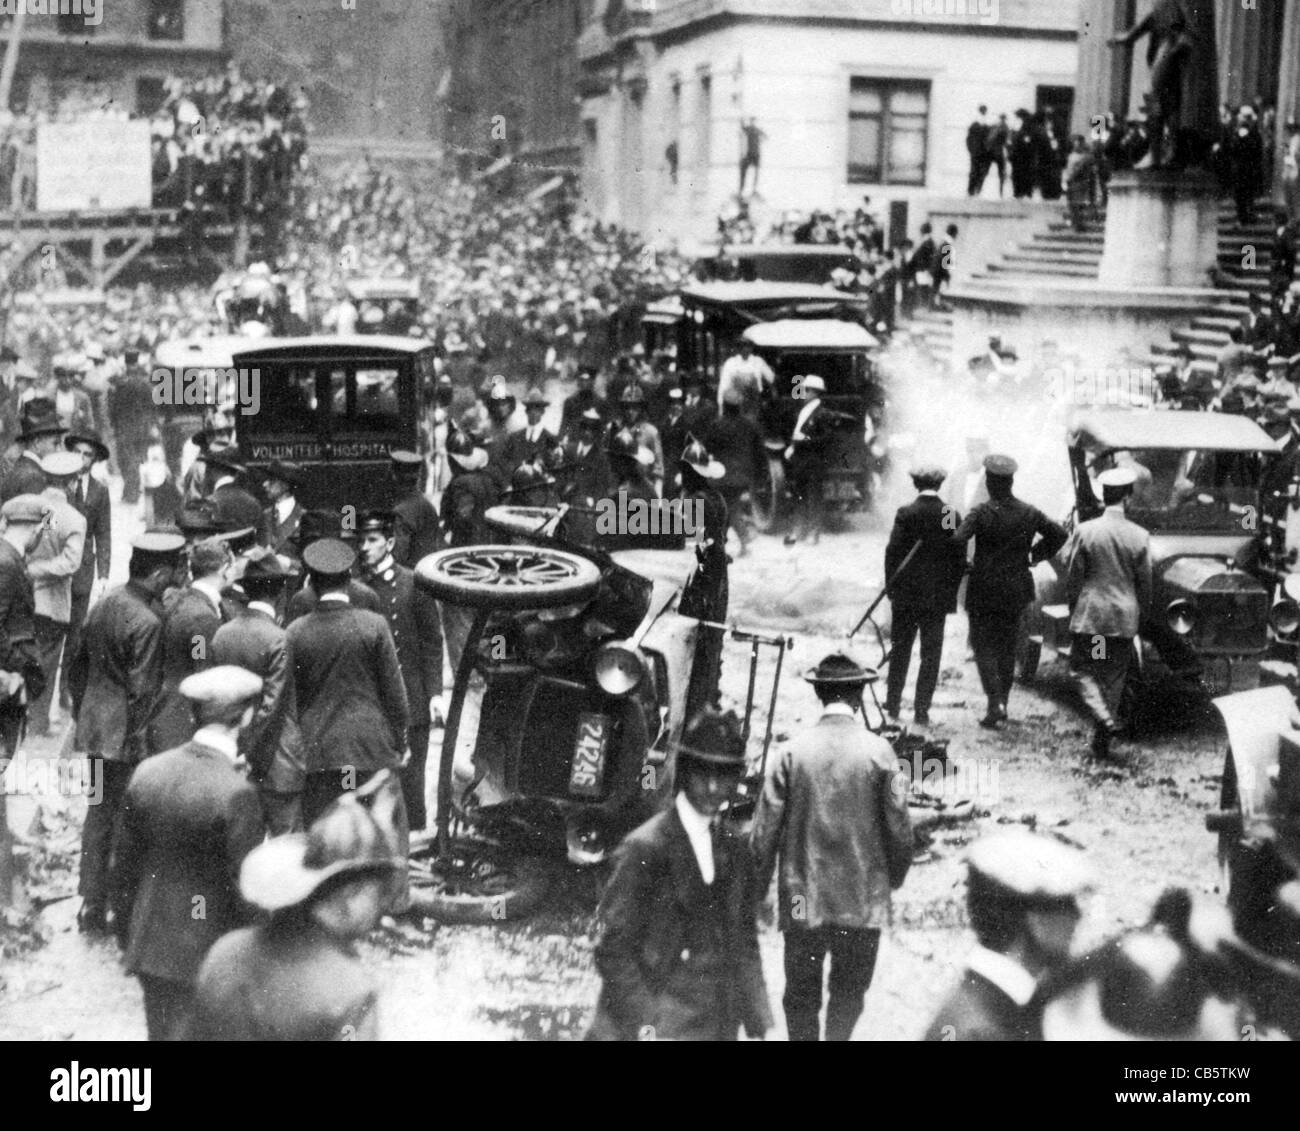 WALL STREET EXPLOSION 16 September 1920. Aftermath of the explosion outside the offices of J.P.Morgan & Co - Stock Image